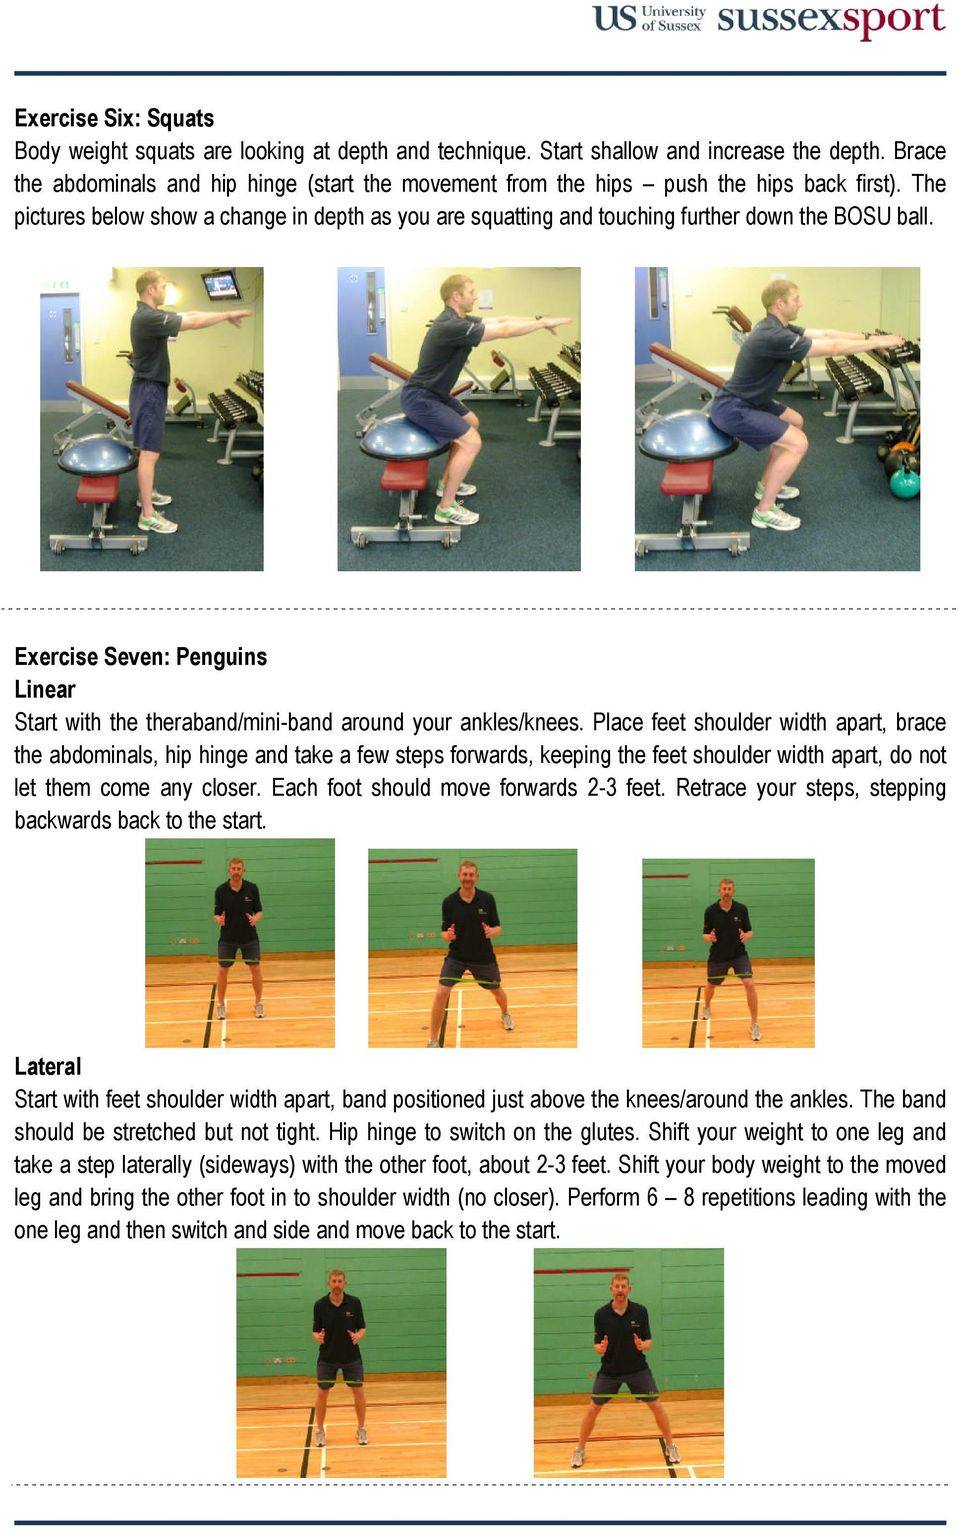 Exercise Seven: Penguins Linear Start with the theraband/mini-band around your ankles/knees.